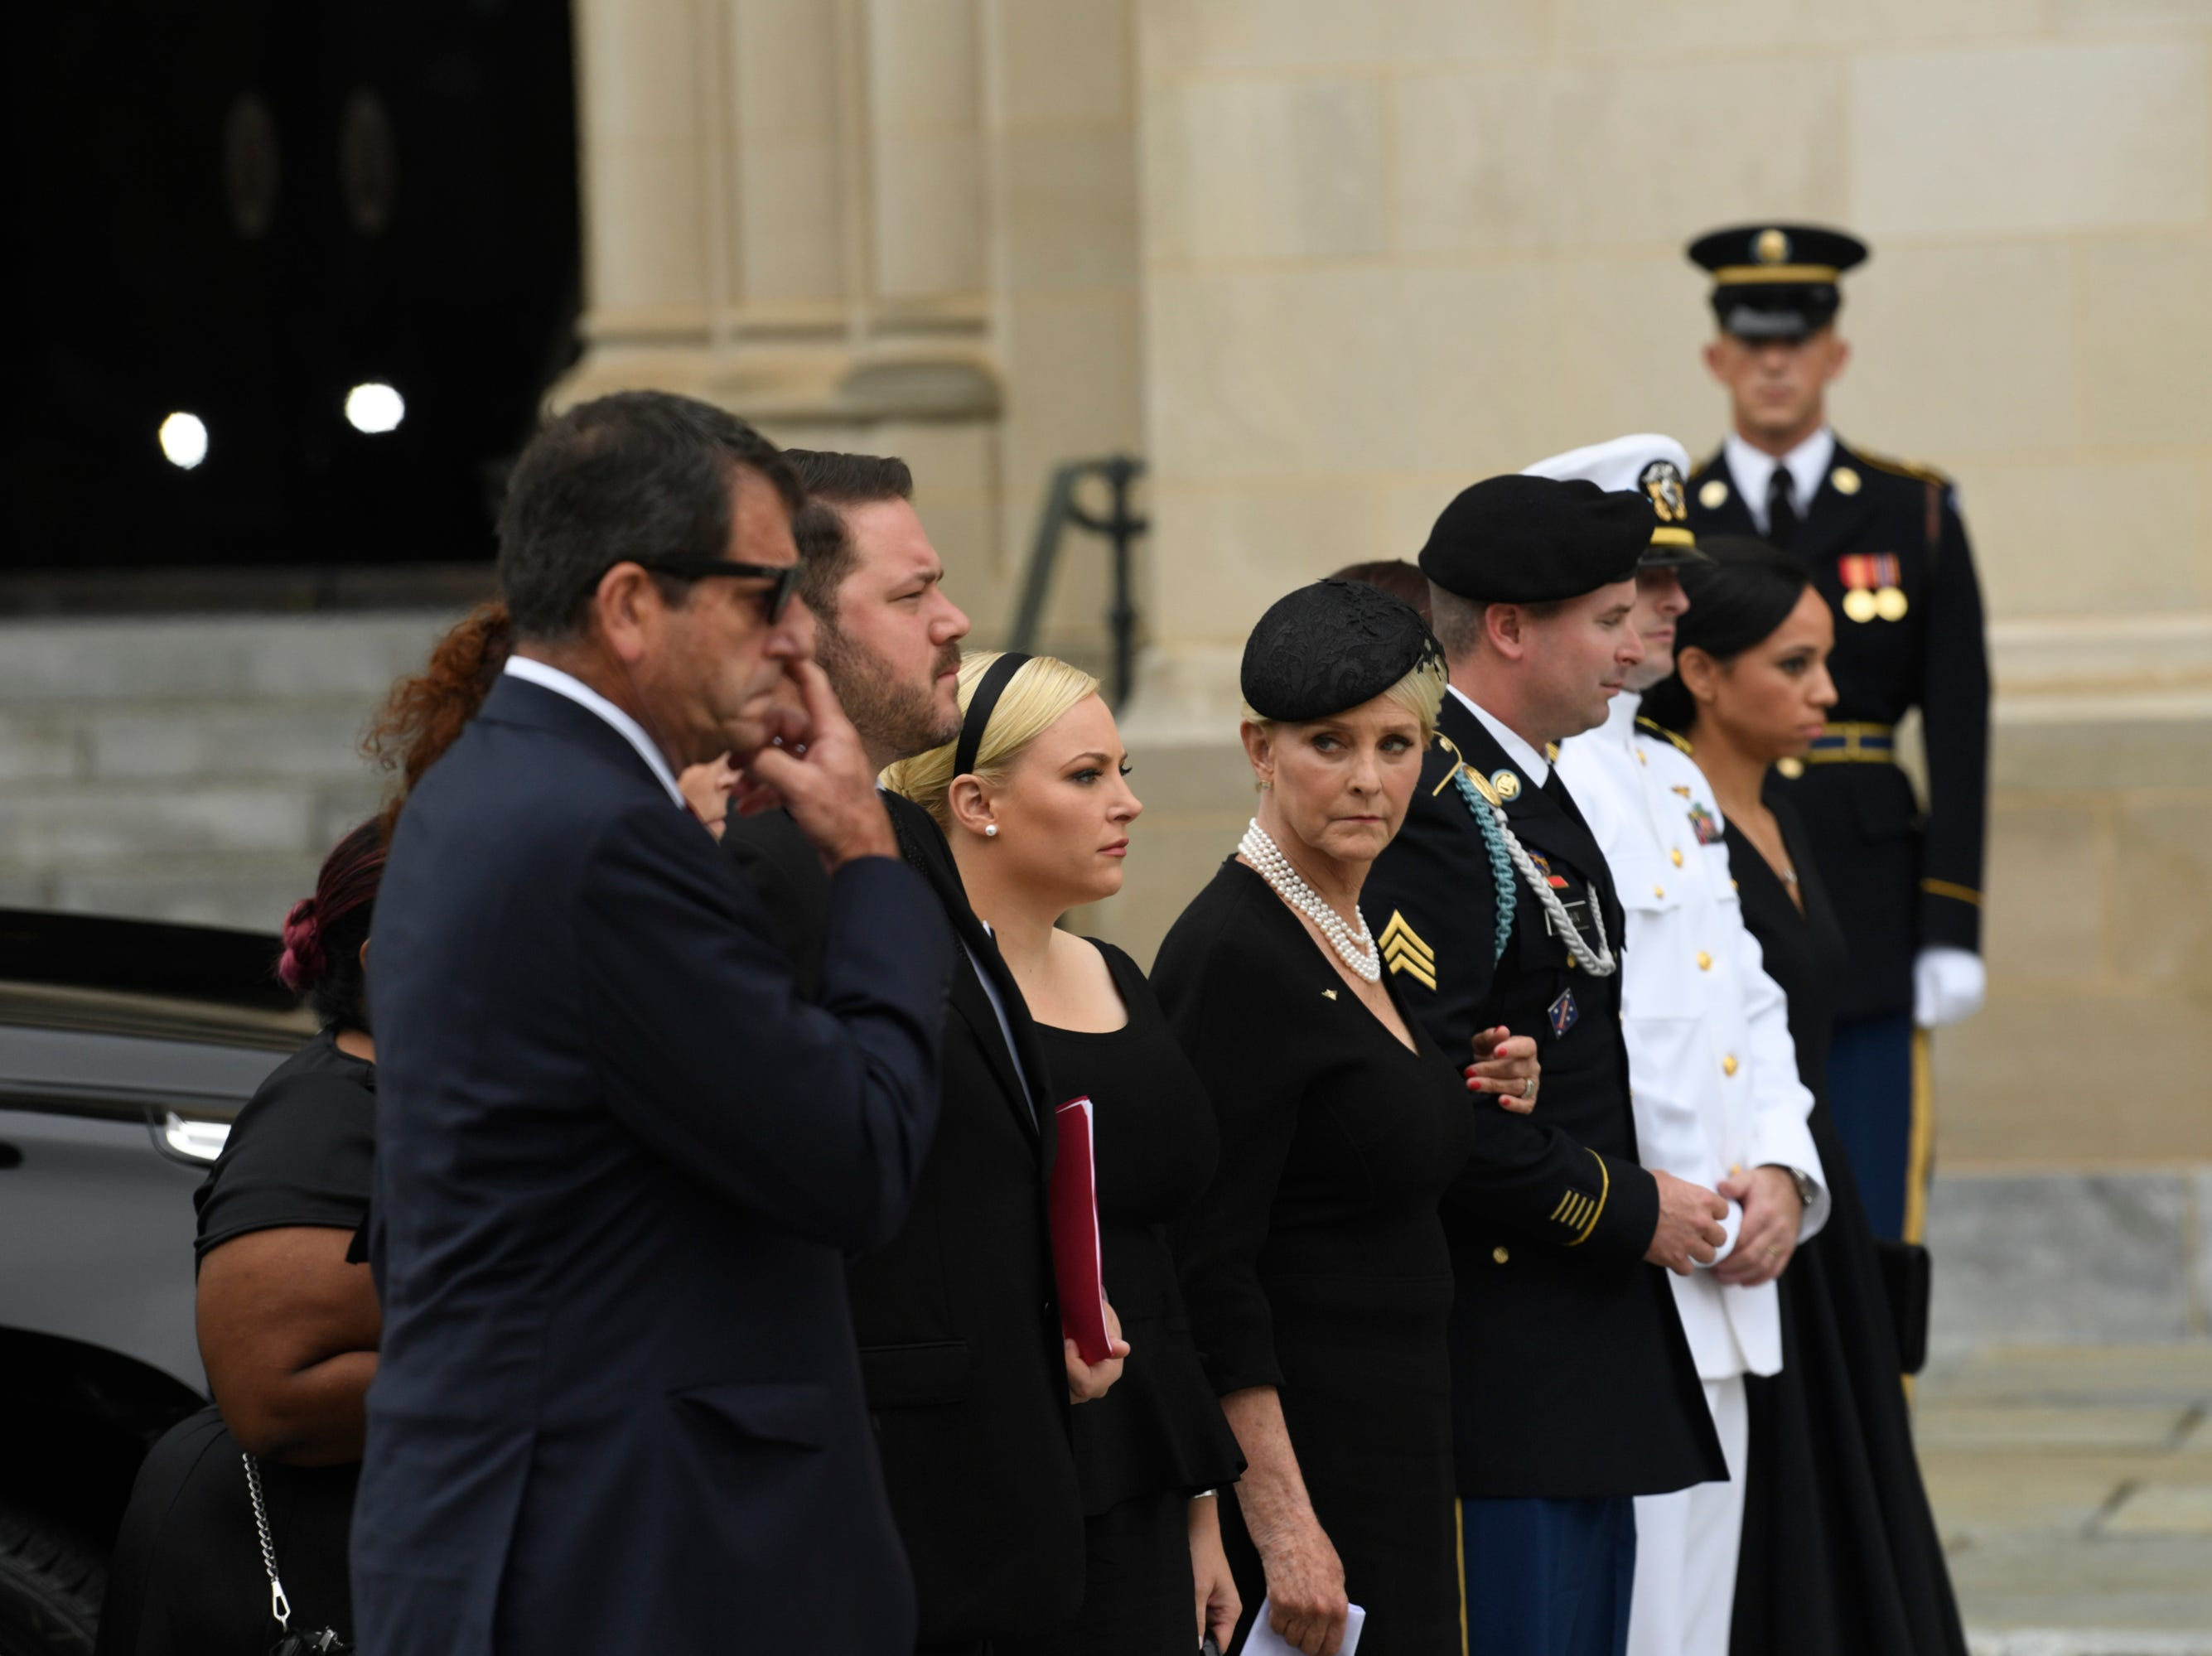 9/1/18 9:41:33 AM -- Washington, DC, U.S.A  -- Members of the McCain family watch as John McCainÕs casket is carried into the National Cathedral in Washington for a memorial service on Sept. 1, 2018. Sen. McCain died on Aug. 25. --    Photo by Jasper Colt, USA TODAY Staff